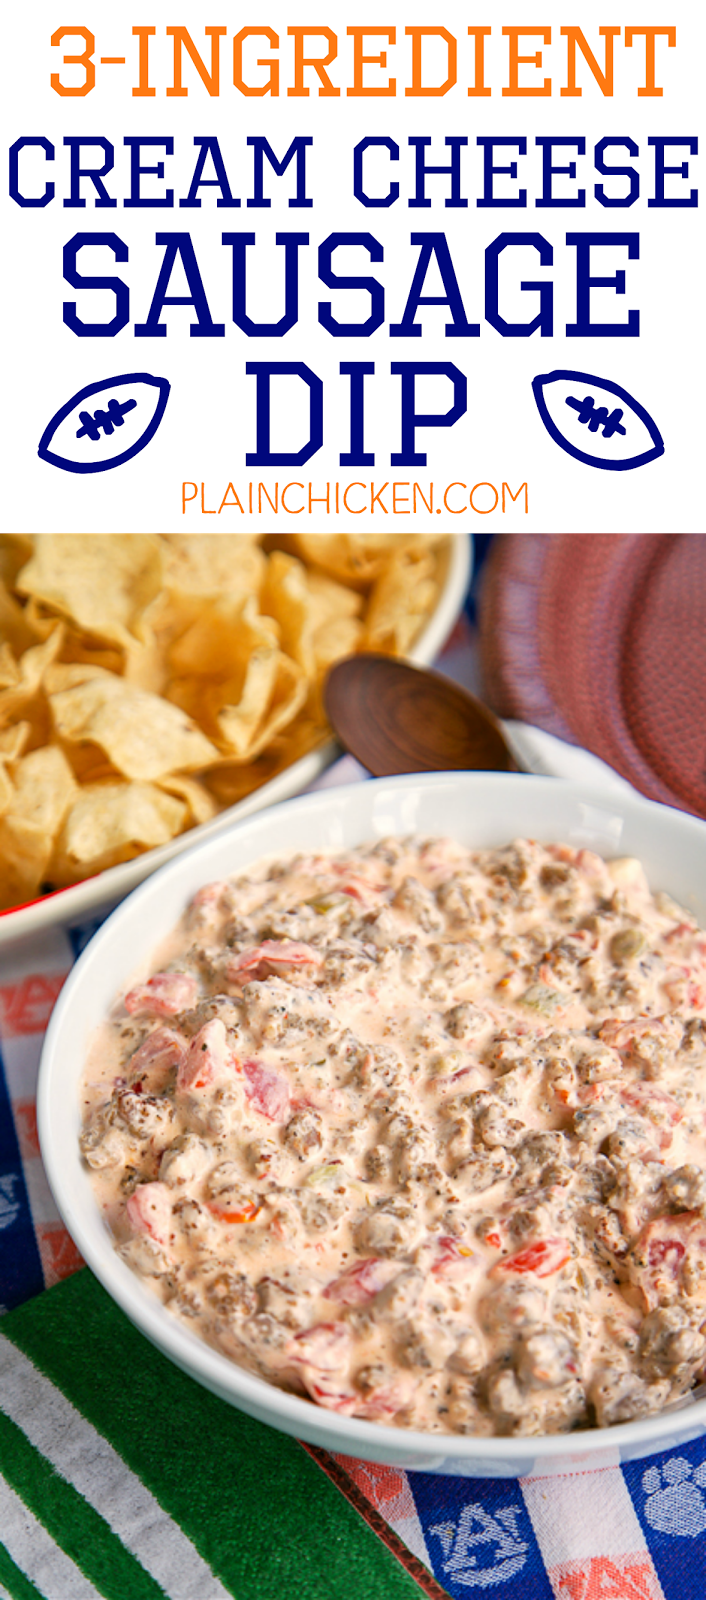 3 Ingredient Cream Cheese Sausage Dip Soooo Good Sausage Cream Cheese And Rotel Ready In Under 10 Minutes Sausage Dip Food Snacks